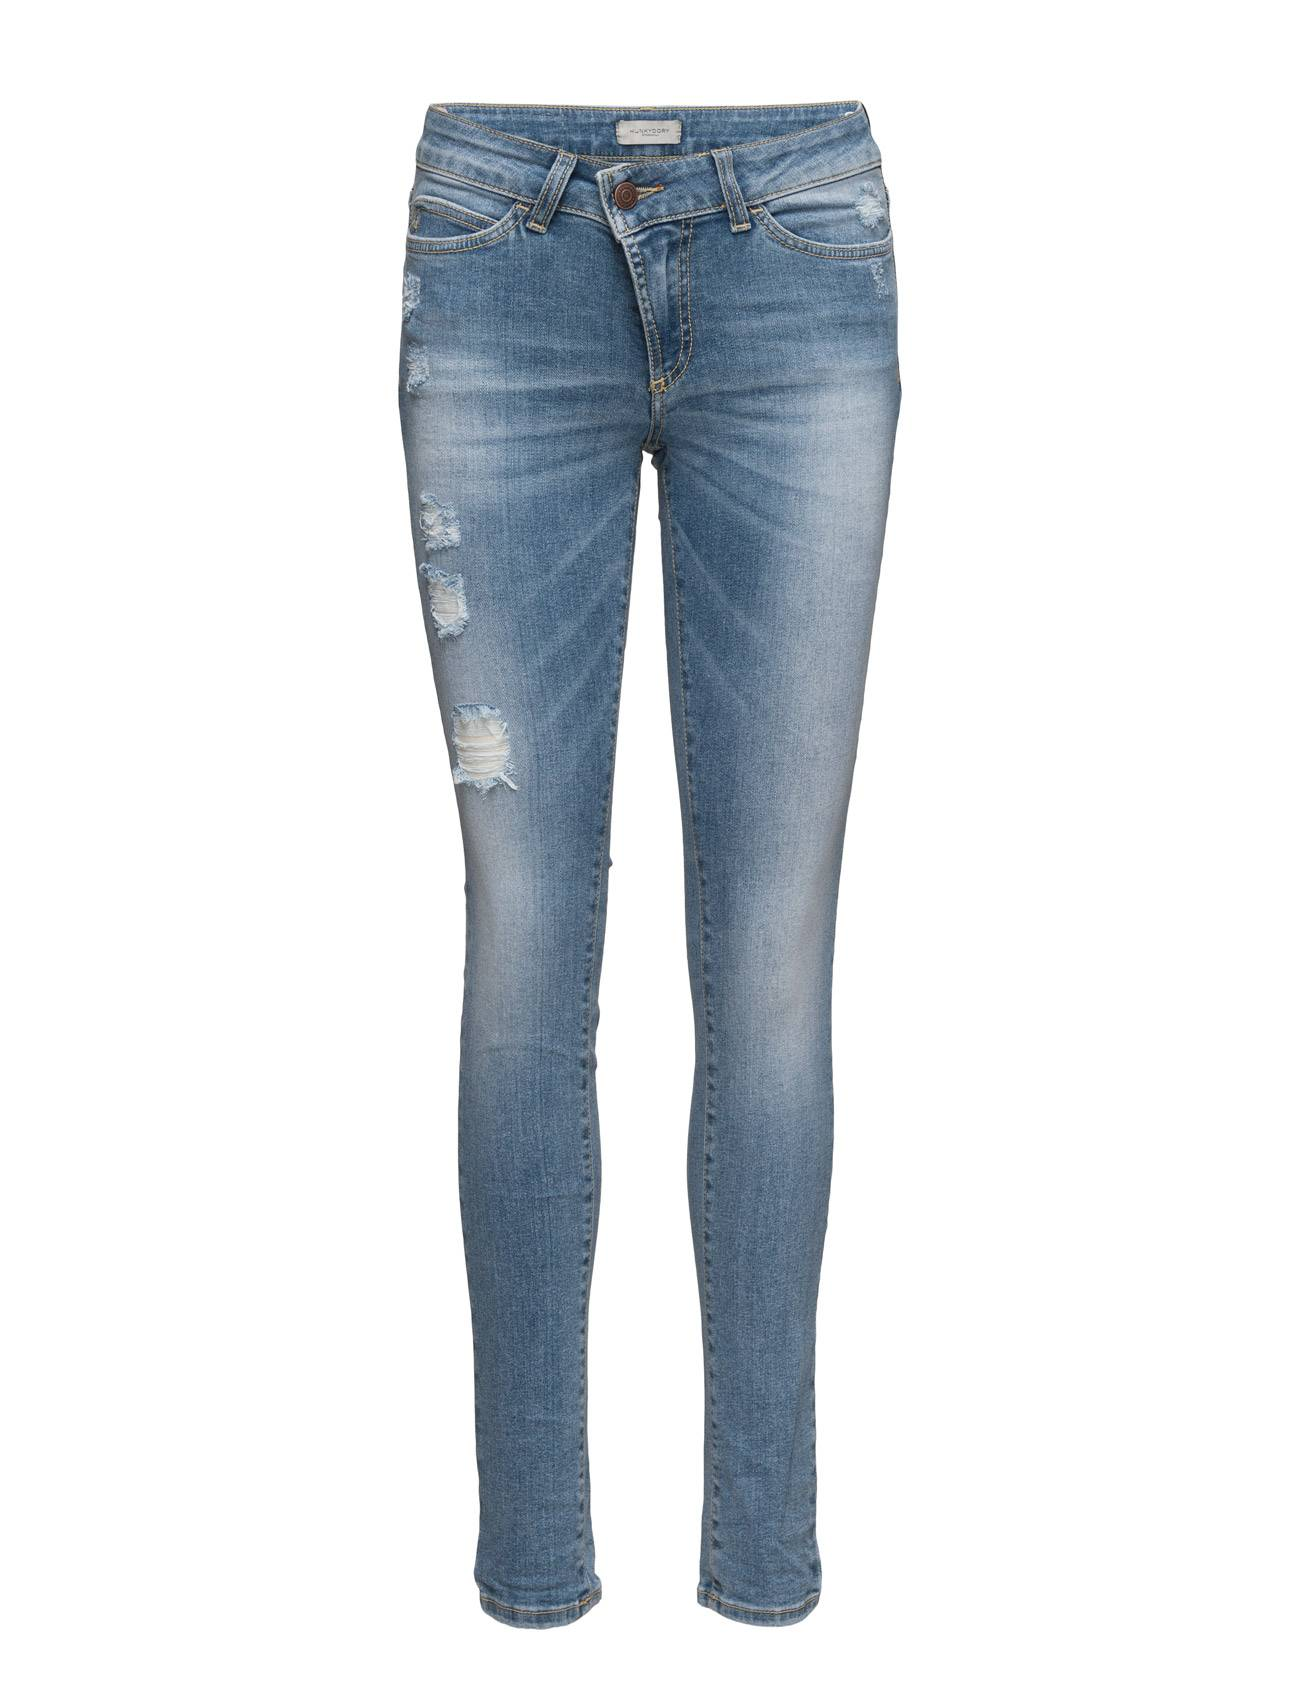 Hunkydory H.D Jeans